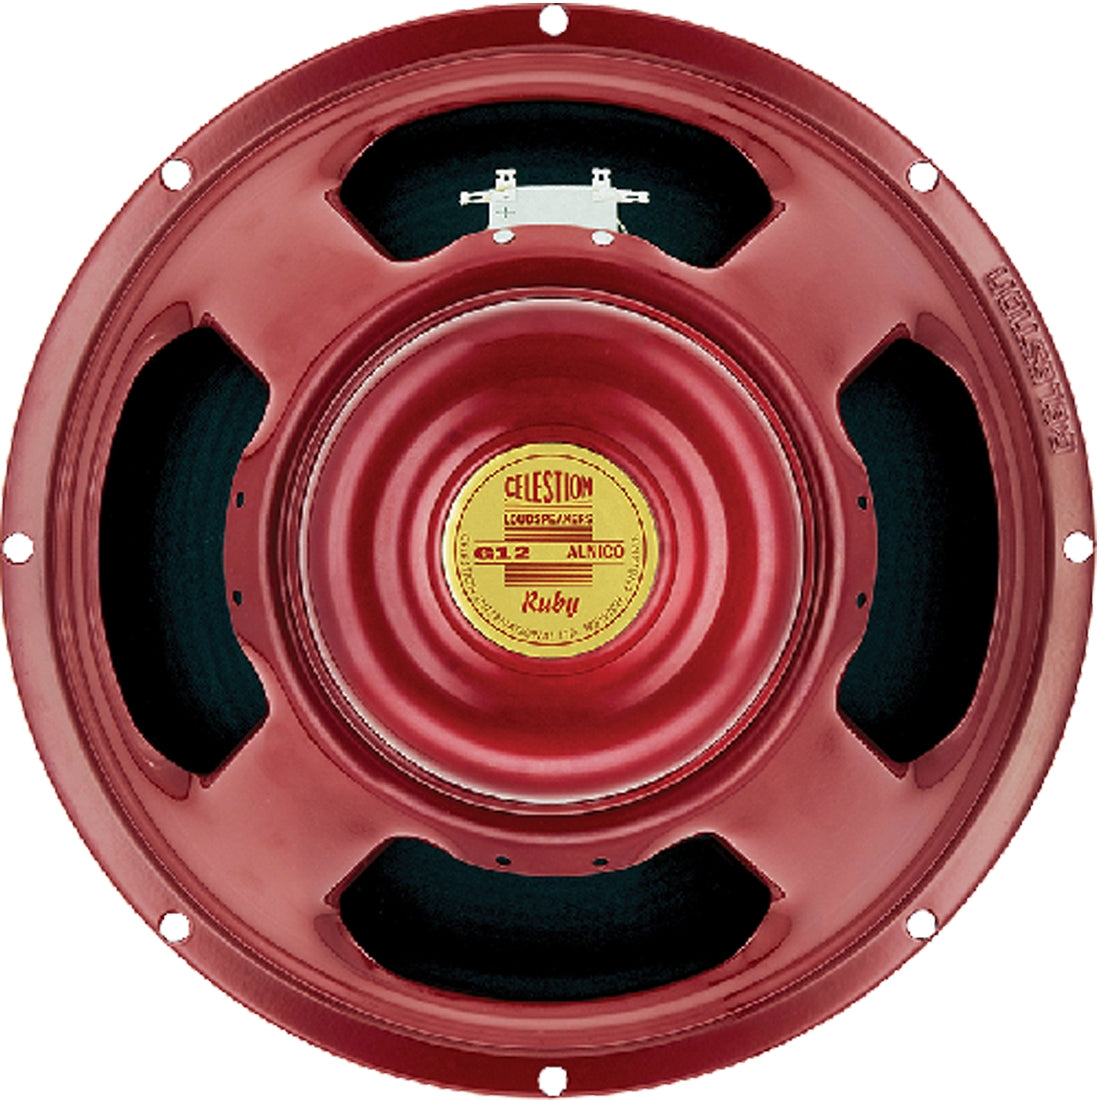 Celestion T6388 Alnico RUBY Guitar Speaker 12 Inch 35w 8ohm